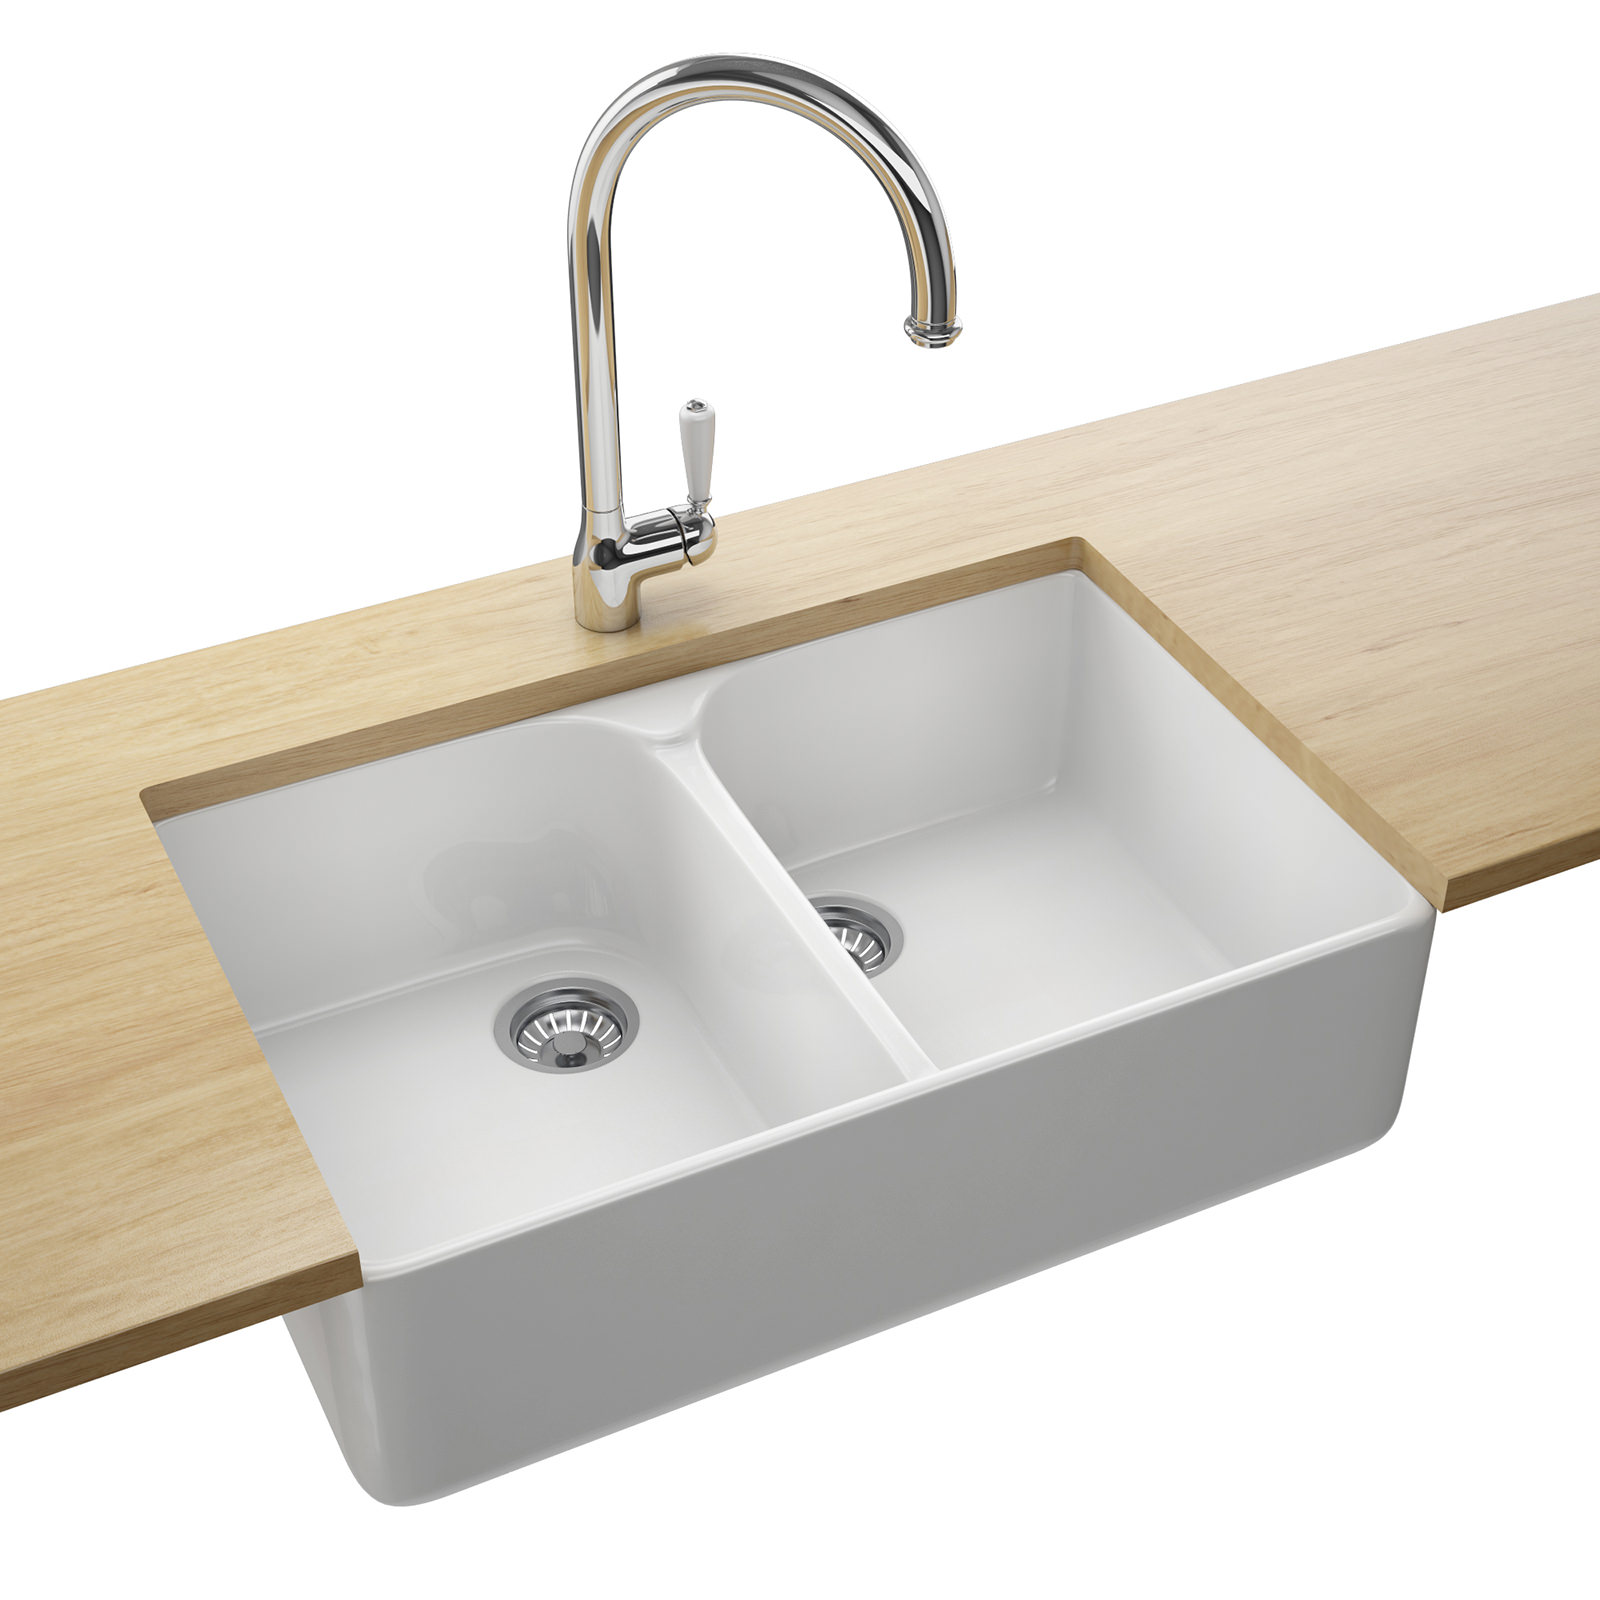 Ceramic Kitchen Sink Franke Belfast Vbk 720 Ceramic White 2 Bowl Kitchen Sink